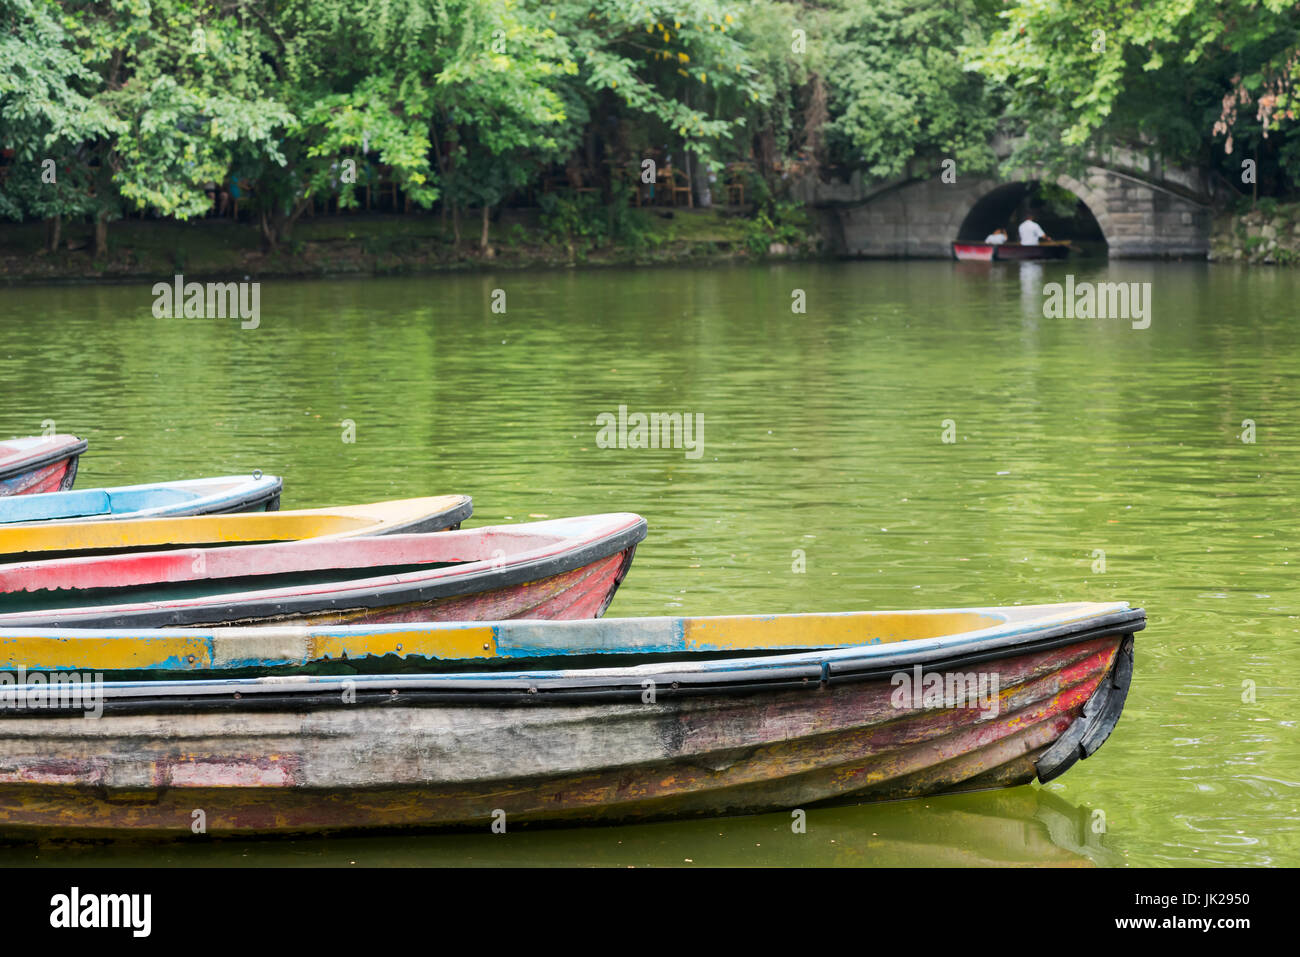 Old multicolored boats on a lake with trees and stone bridge in the ...